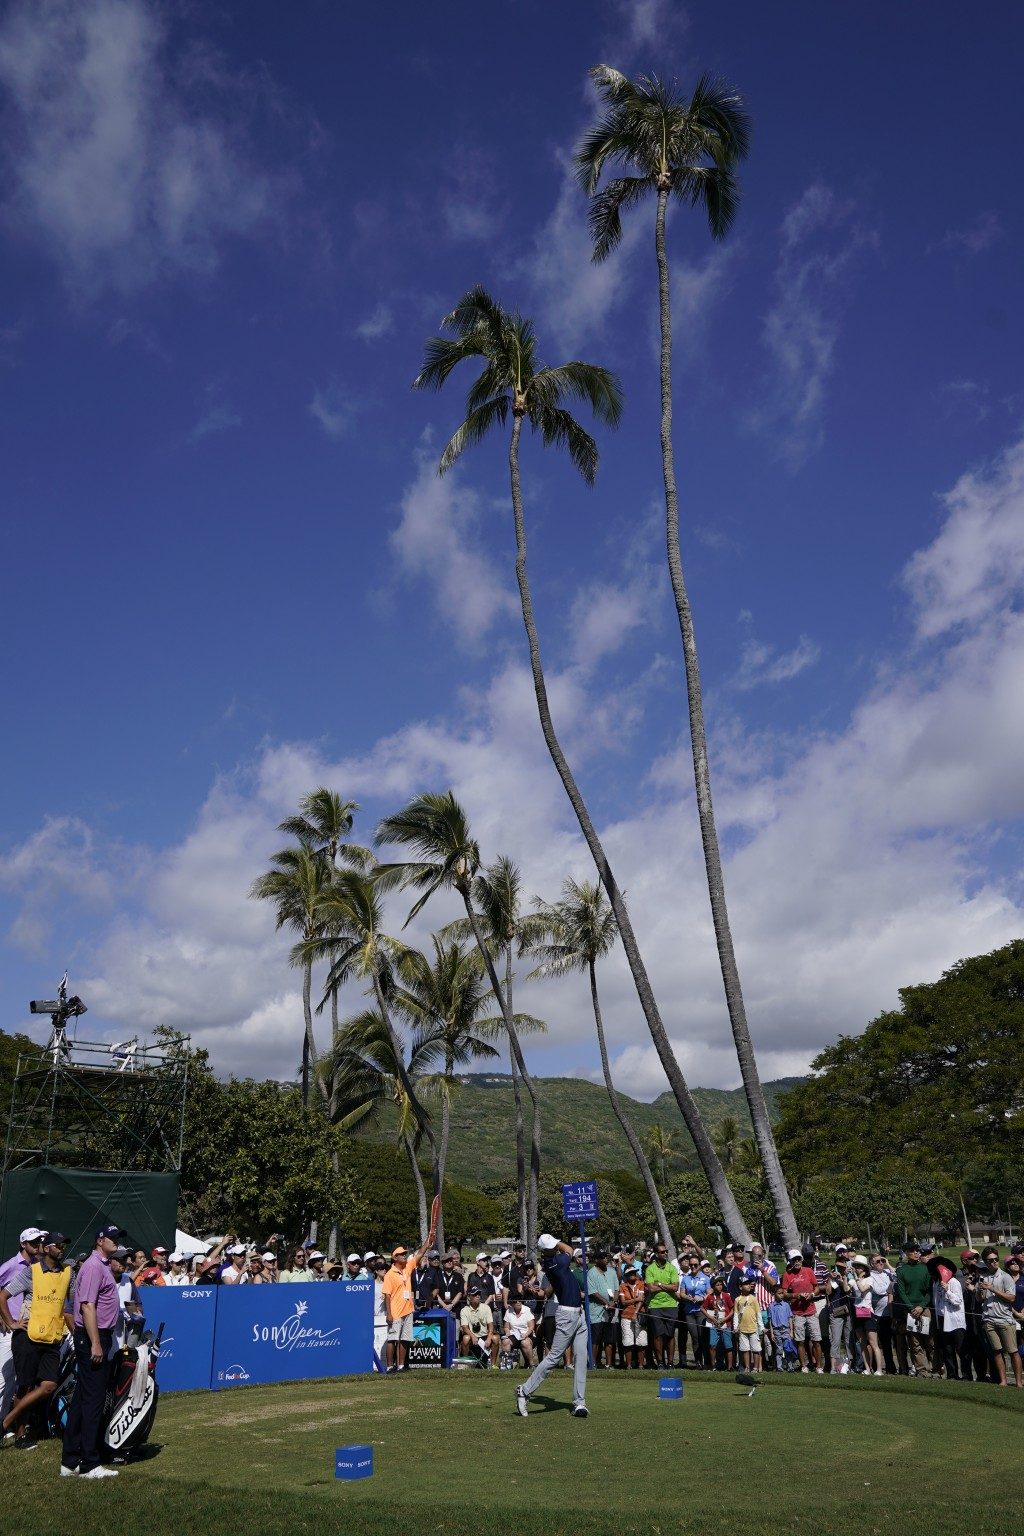 Jordan Spieth tees off on the 11th tee during the third round of the Sony Open golf tournament, Saturday Jan. 13, 2018, in Honolulu. (AP Photo/Marco G